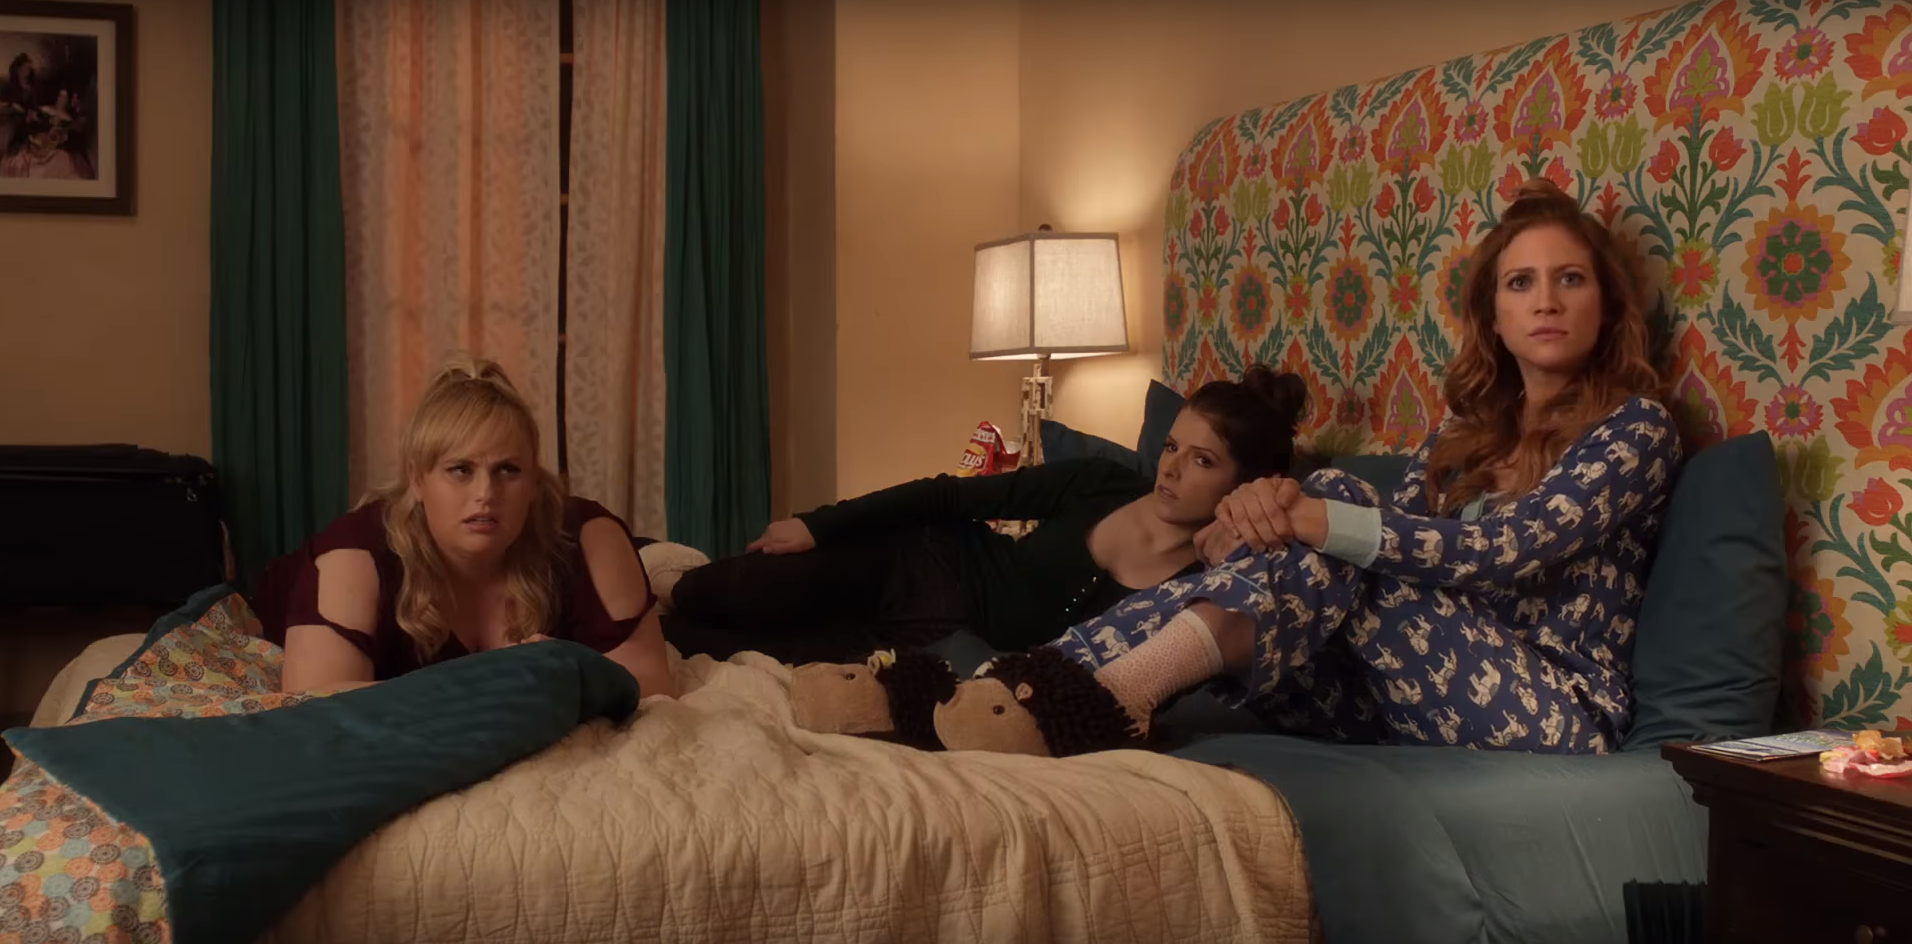 New Trailer For Pitch Perfect 3 Starring Anna Kendrick